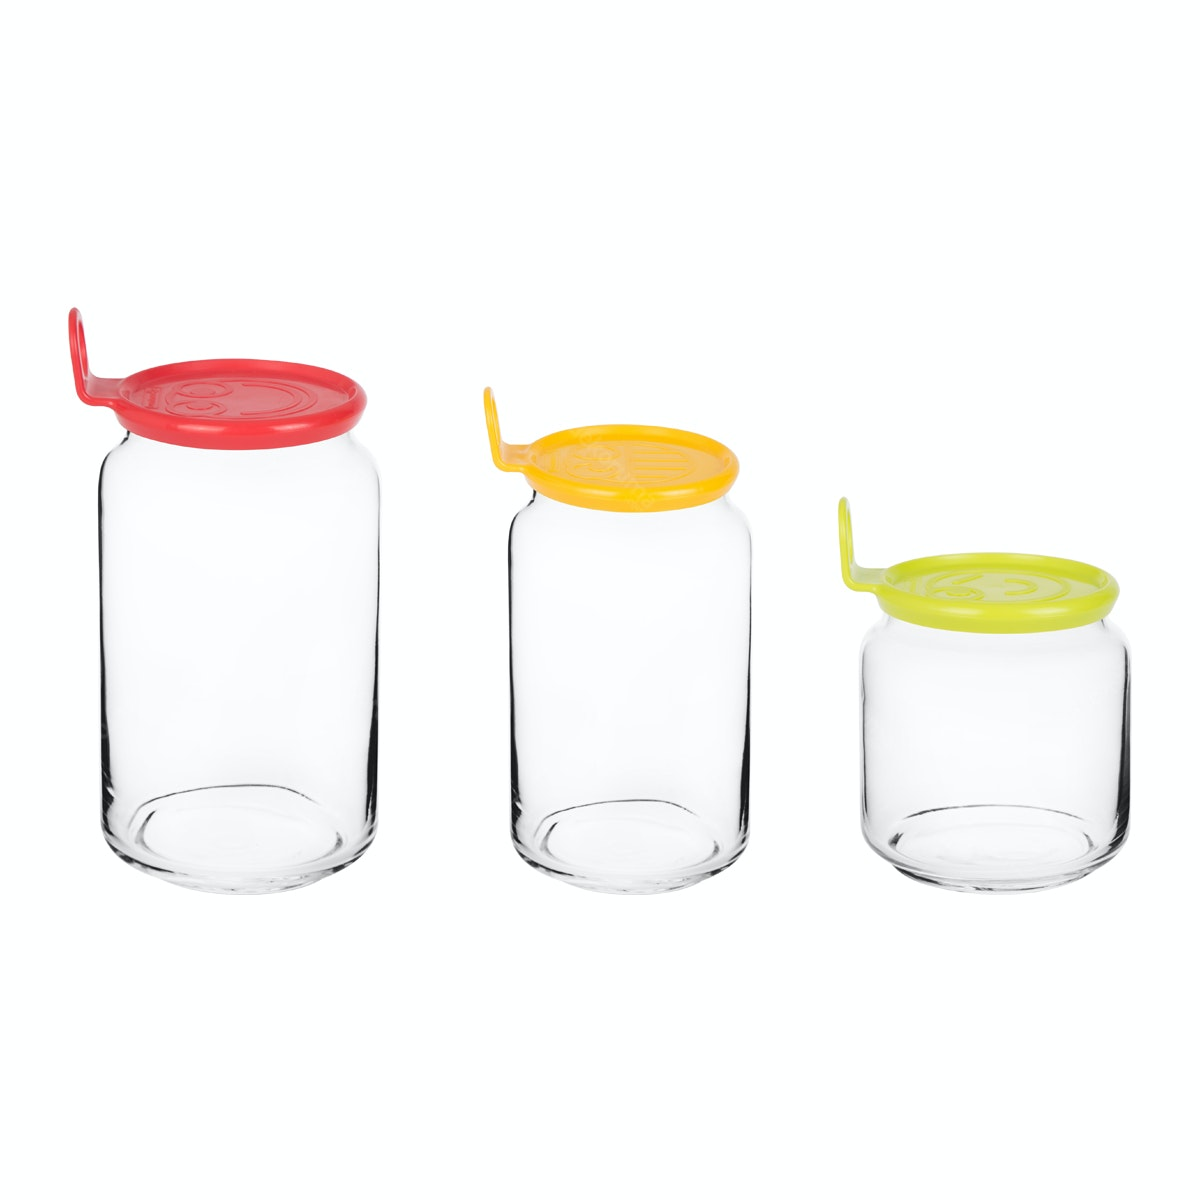 Luminarc Rondo Jar Smile 3 pcs Set (Green. Yellow & Red)